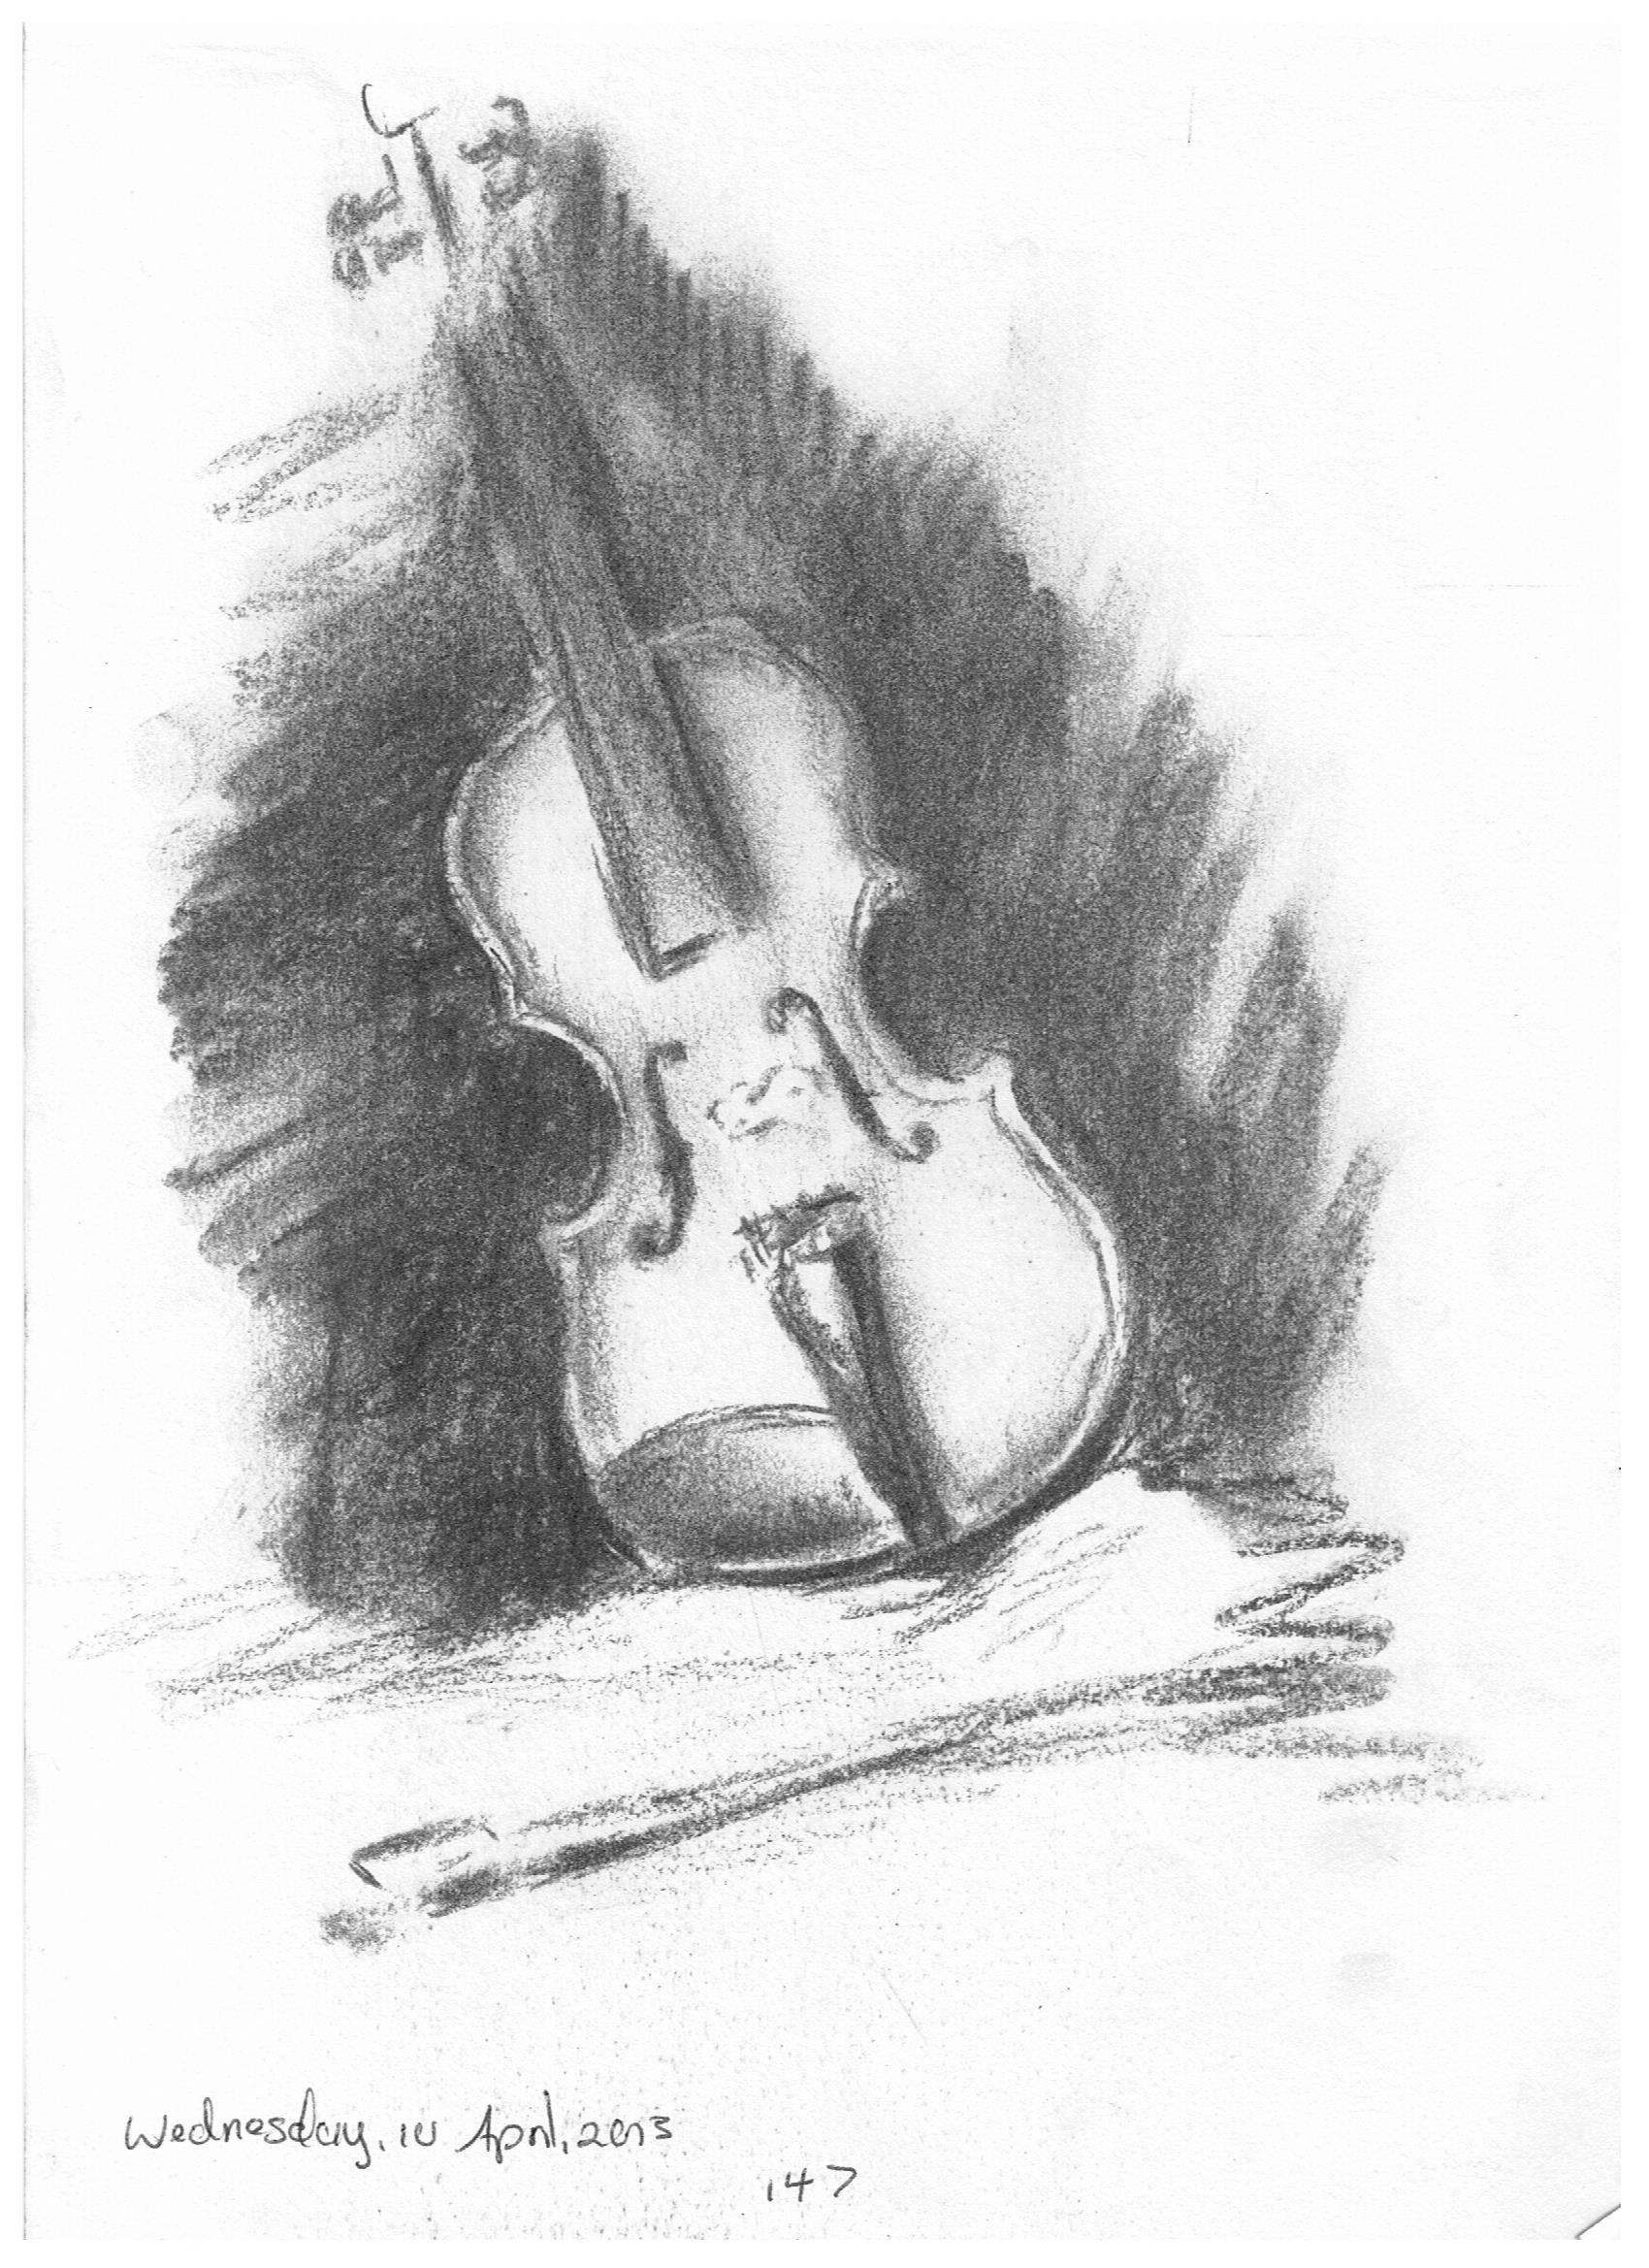 Drawn violinist realistic Violin in drawing charcoal Pinterest